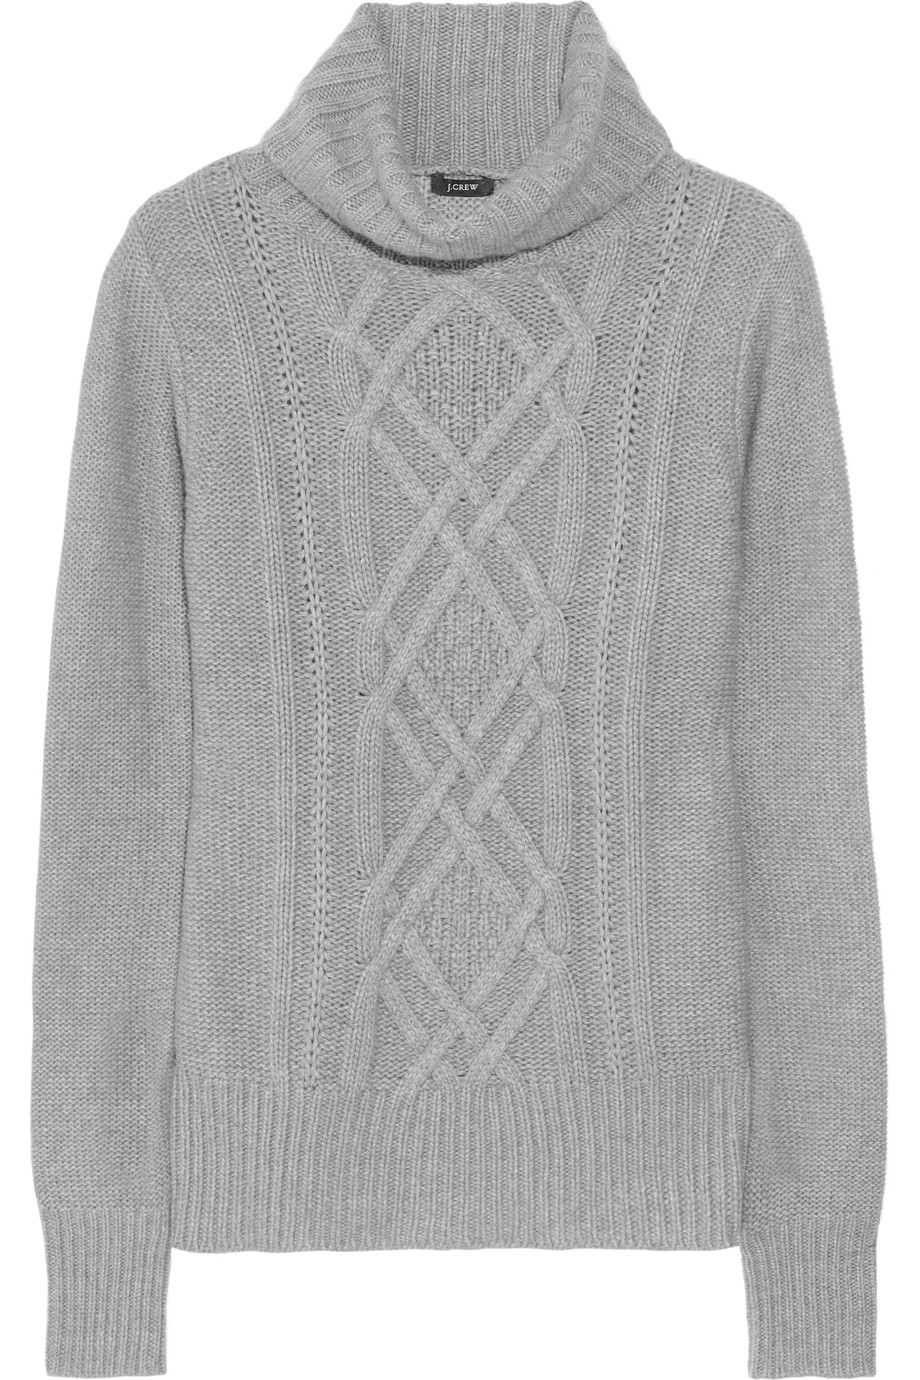 J.crew Cambridge Cable Turtleneck Sweater in Gray | Lyst